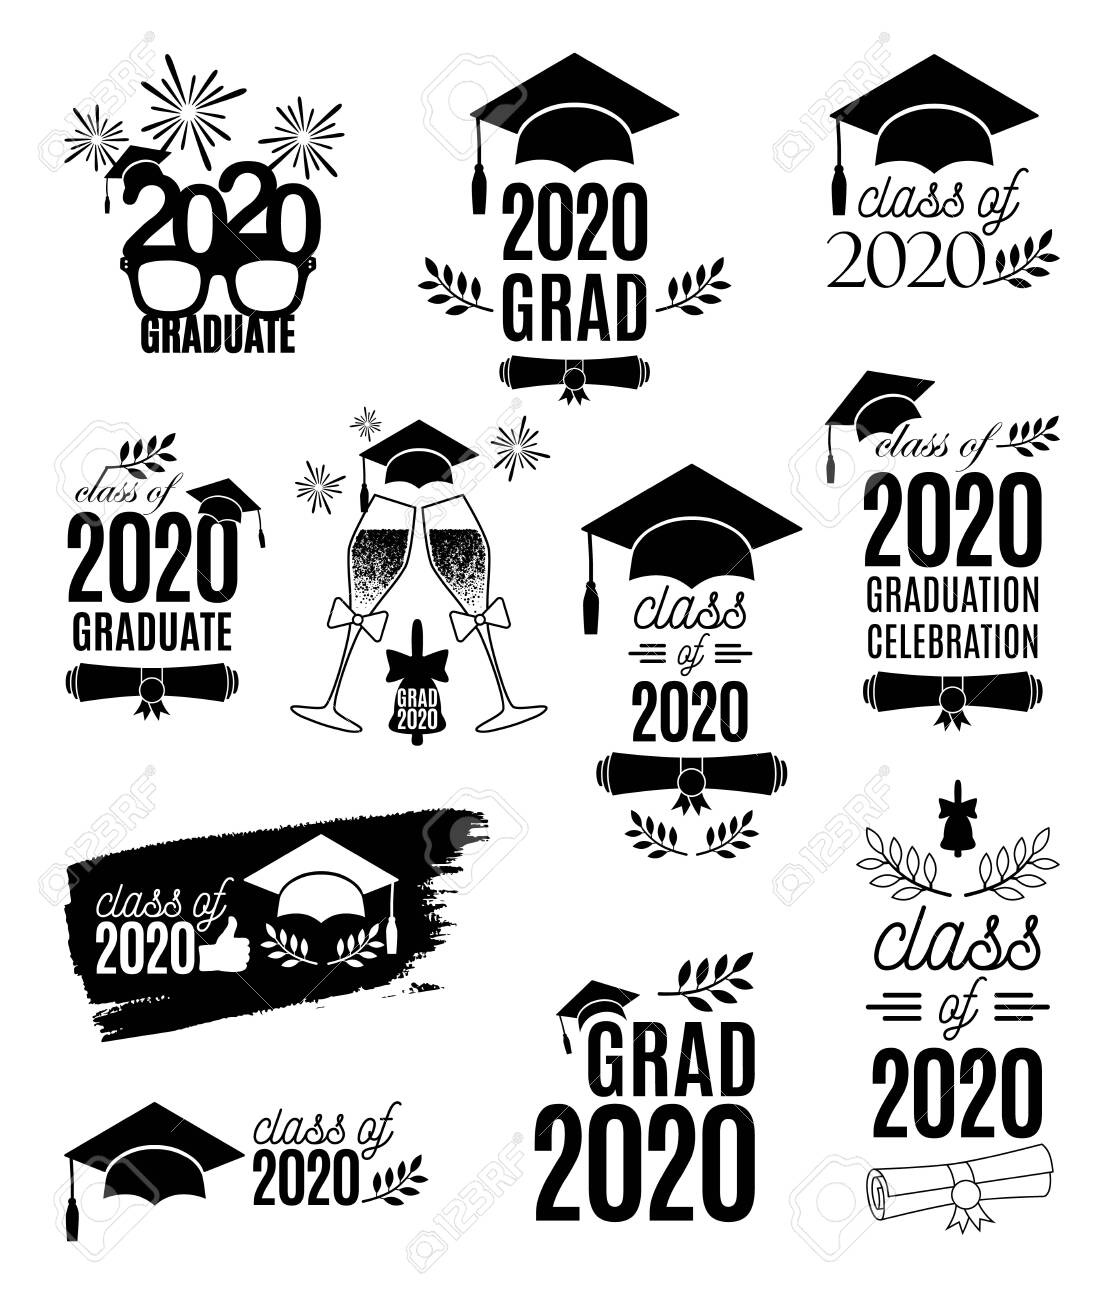 Graduate 2020 Labels Design Set Concept For Shirt Print Seal Royalty Free Cliparts Vectors And Stock Illustration Image 147459024